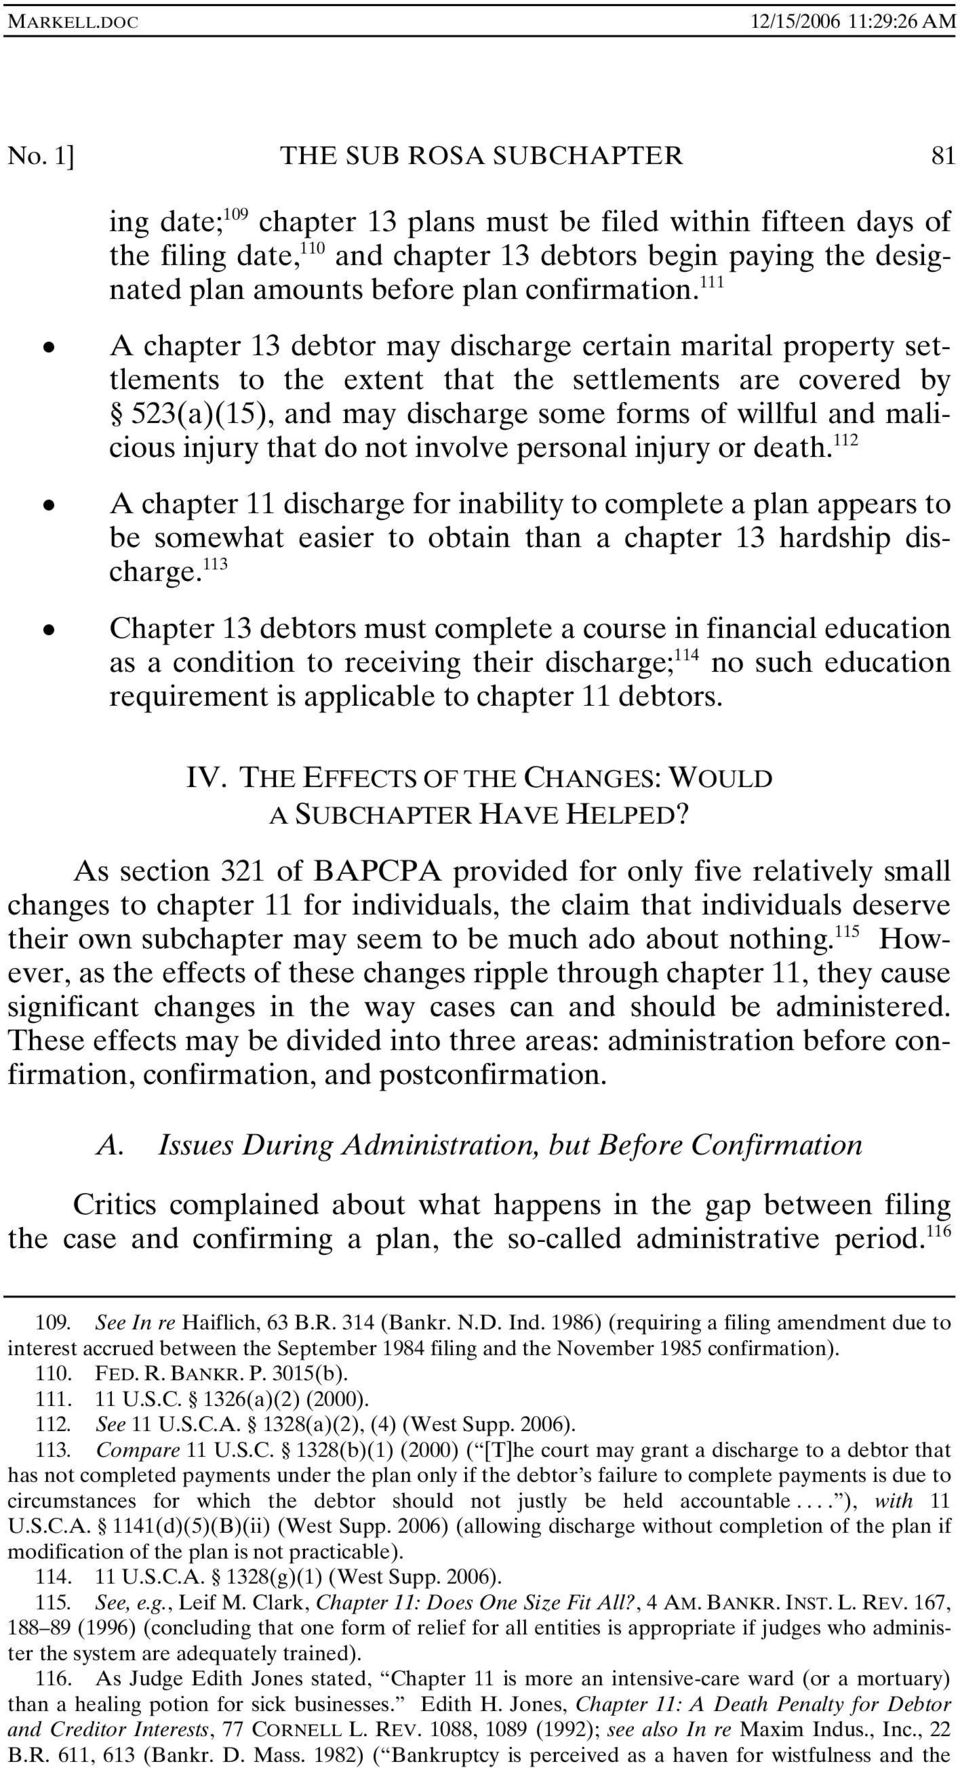 111 A chapter 13 debtor may discharge certain marital property settlements to the extent that the settlements are covered by 523(a)(15), and may discharge some forms of willful and malicious injury